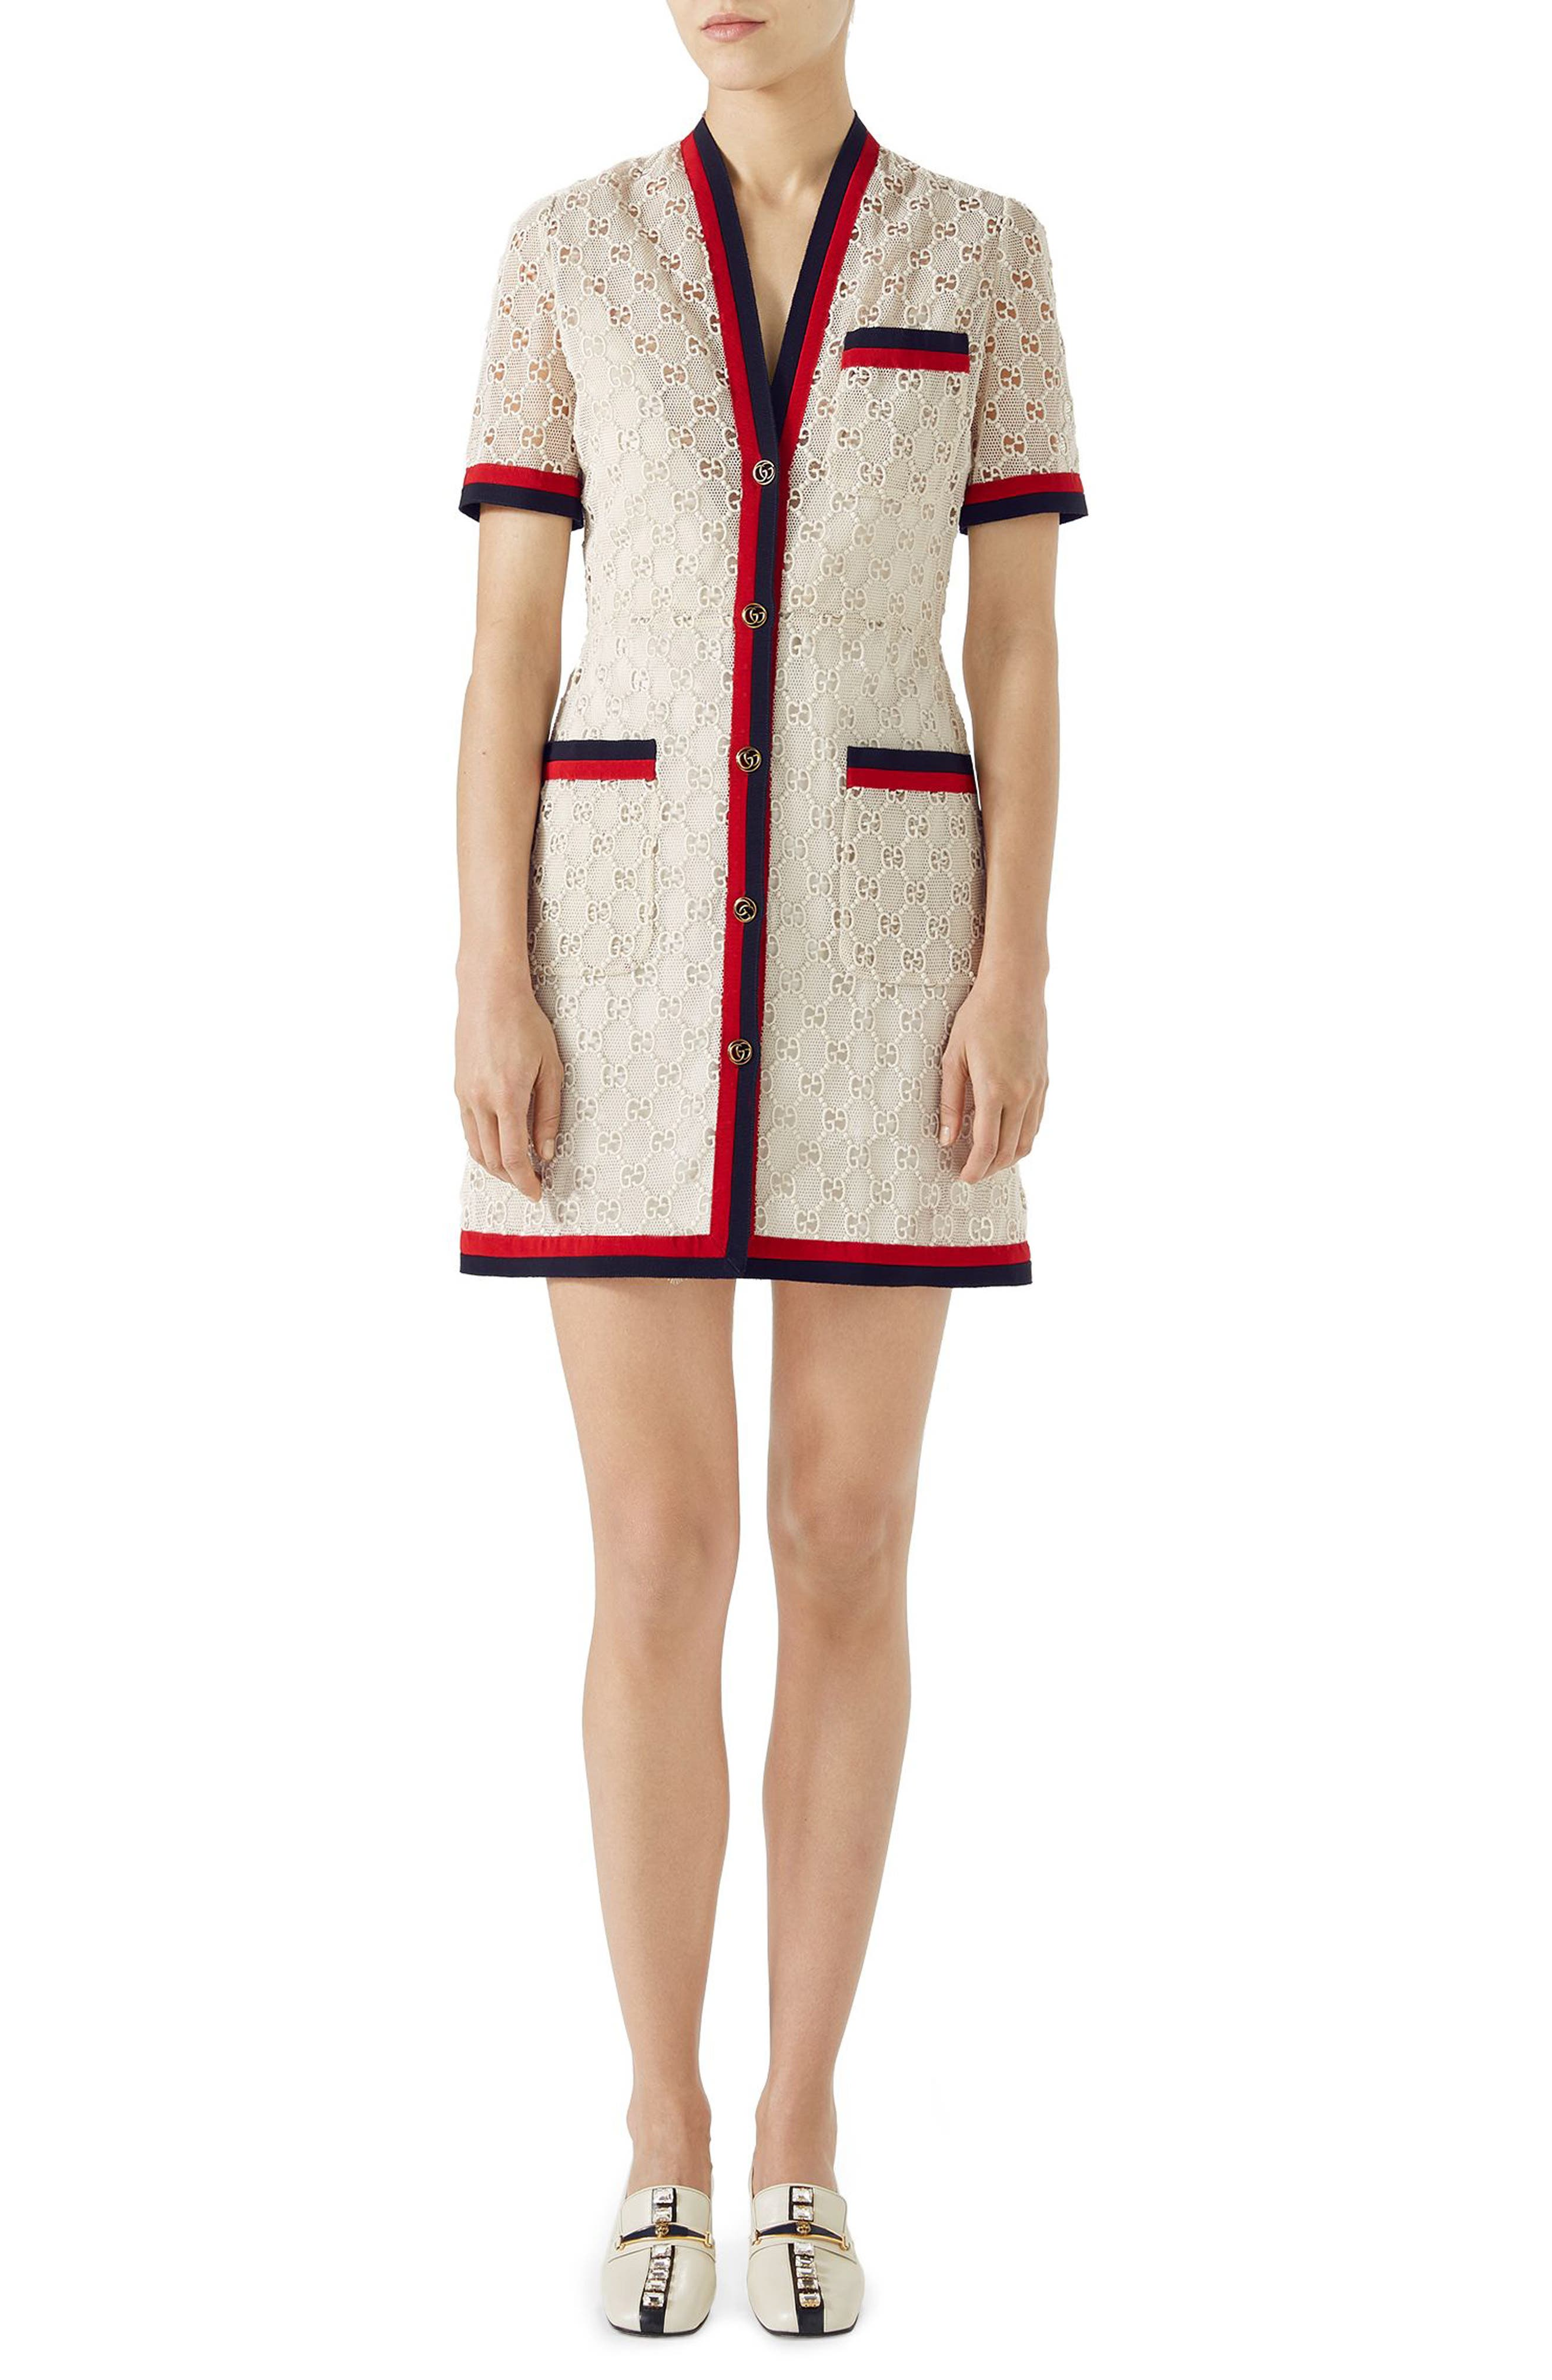 GG Macramé Dress,                         Main,                         color, GARDENIA/ RED/ BK/ RED